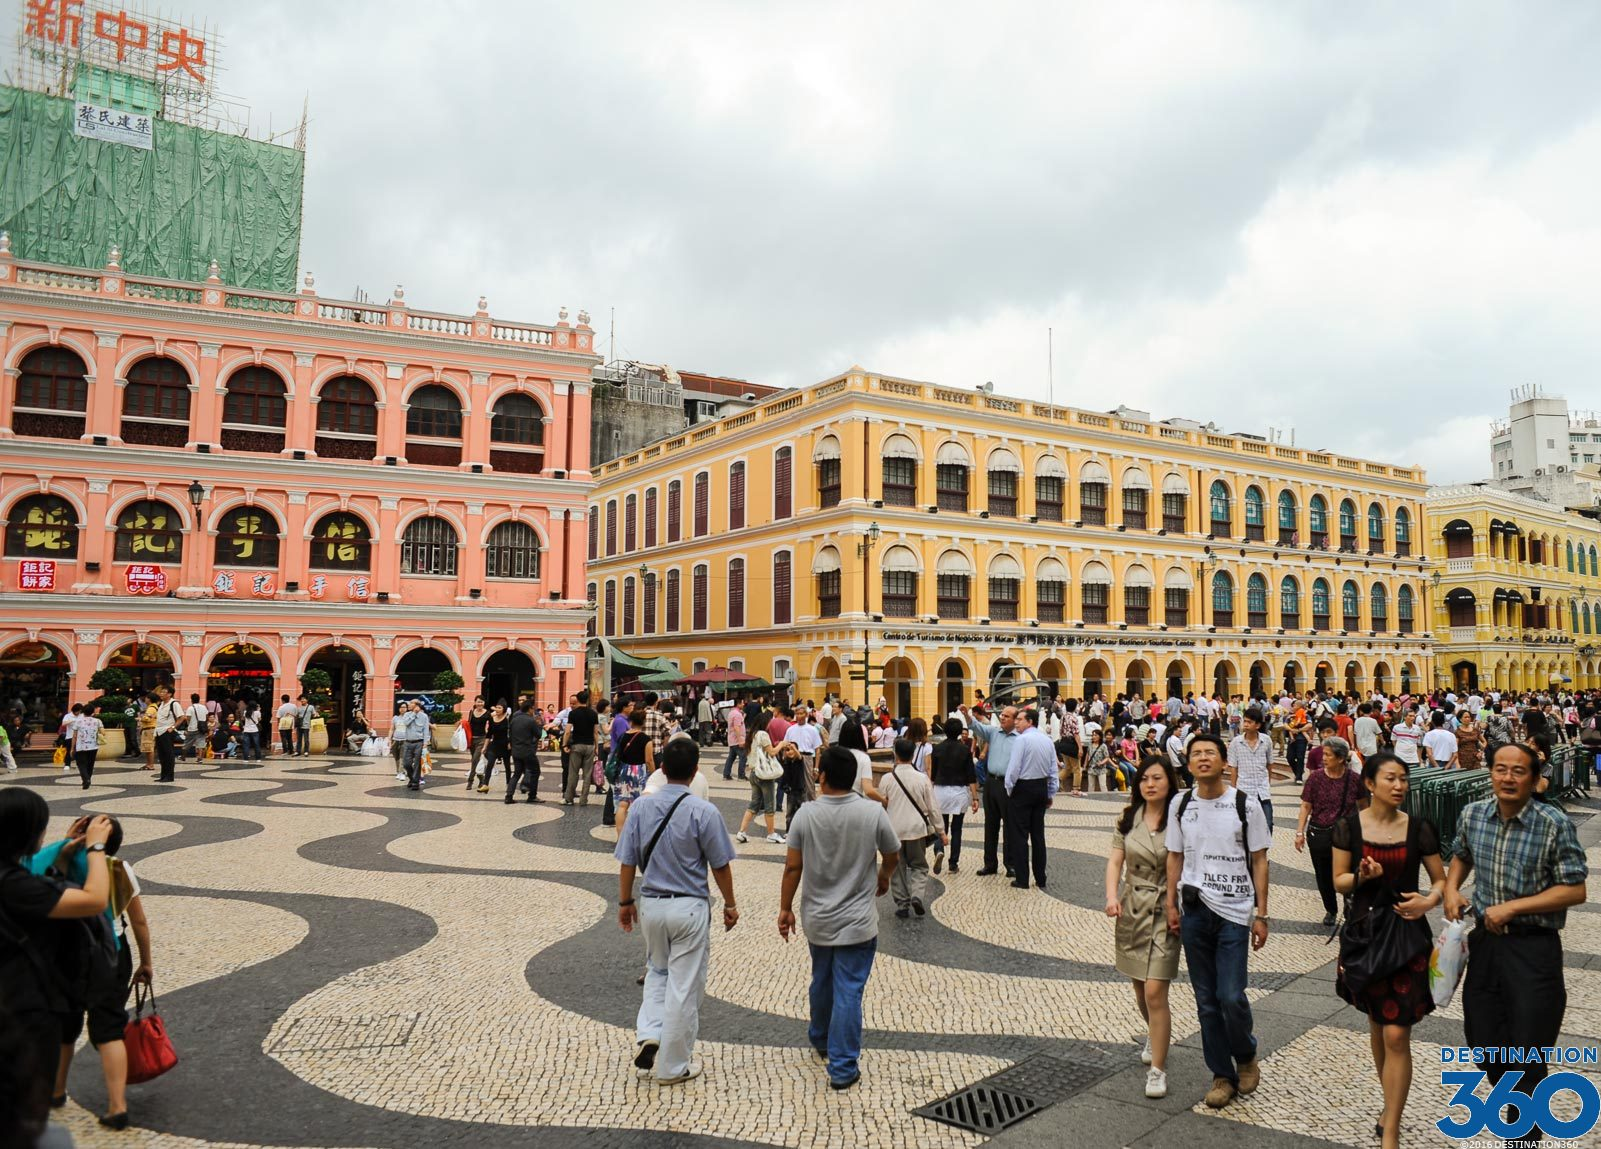 Senado Square Virtual Tour